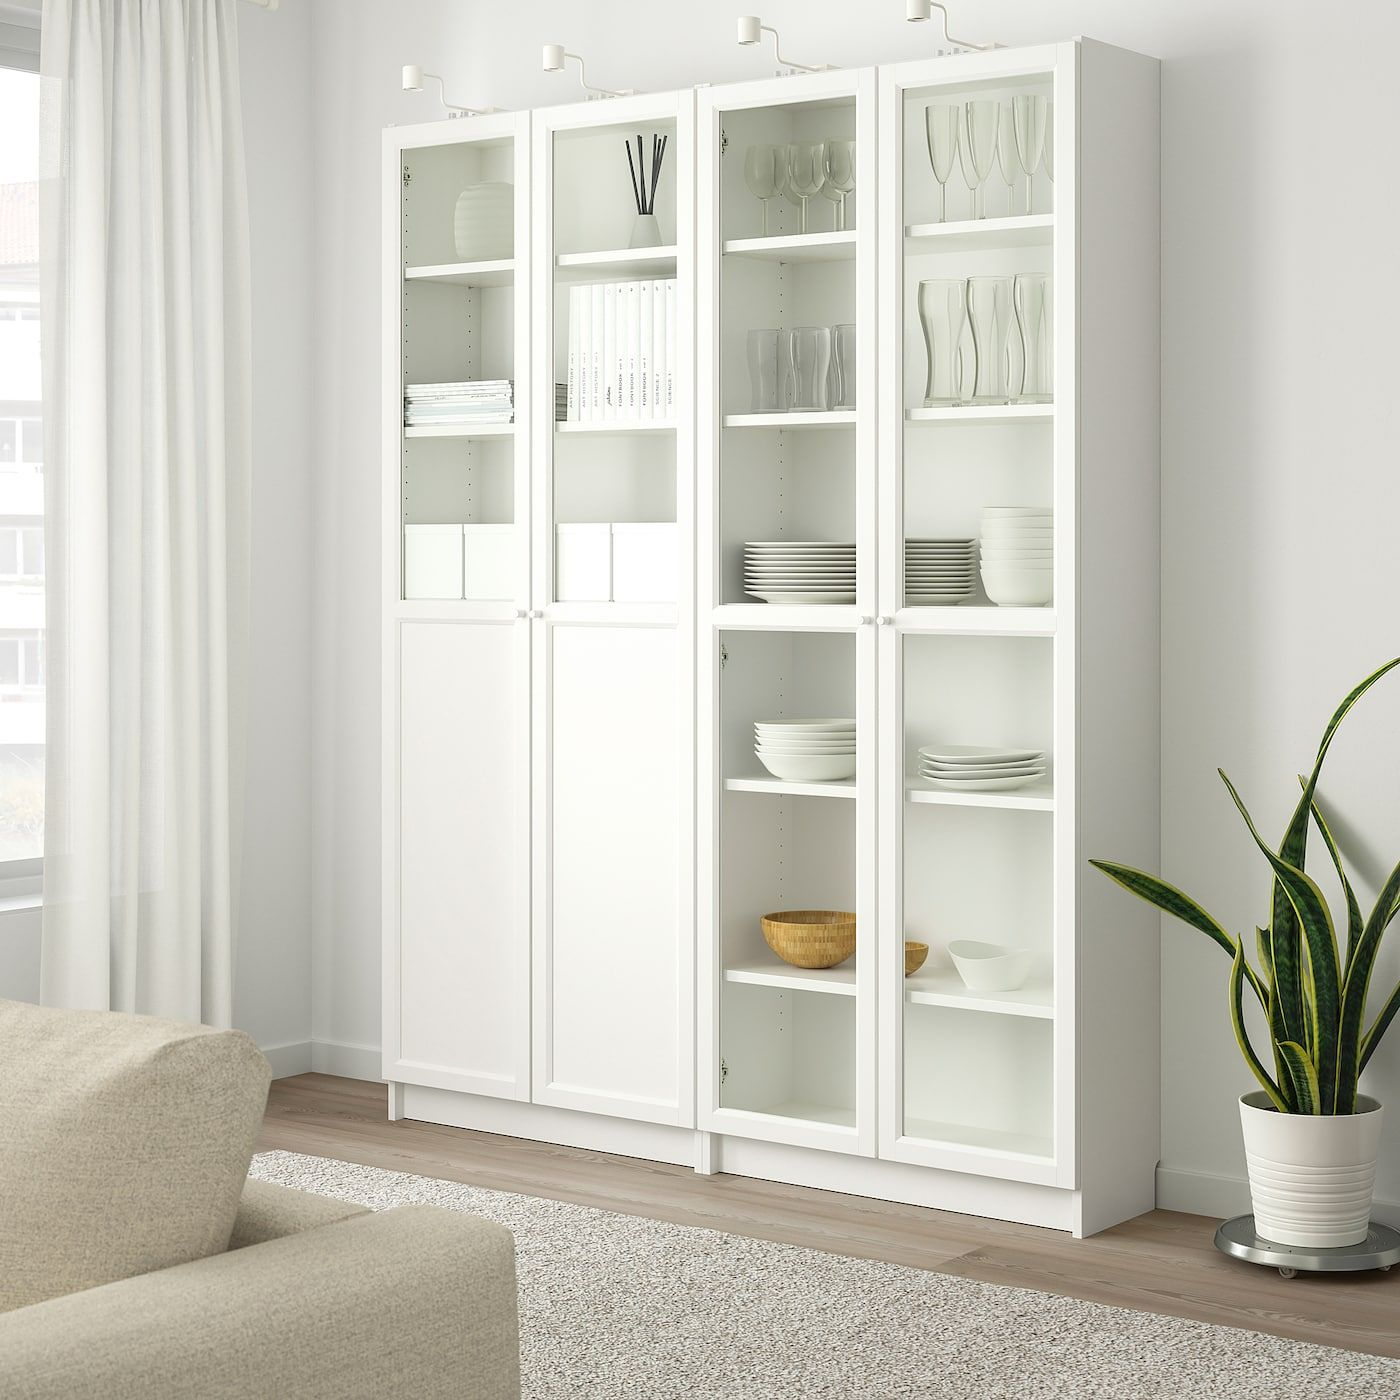 Billy Oxberg Bookcase With Panel Glass Doors White Glass Ikea In 2020 Bookcase With Glass Doors White Paneling Ikea Closet Doors